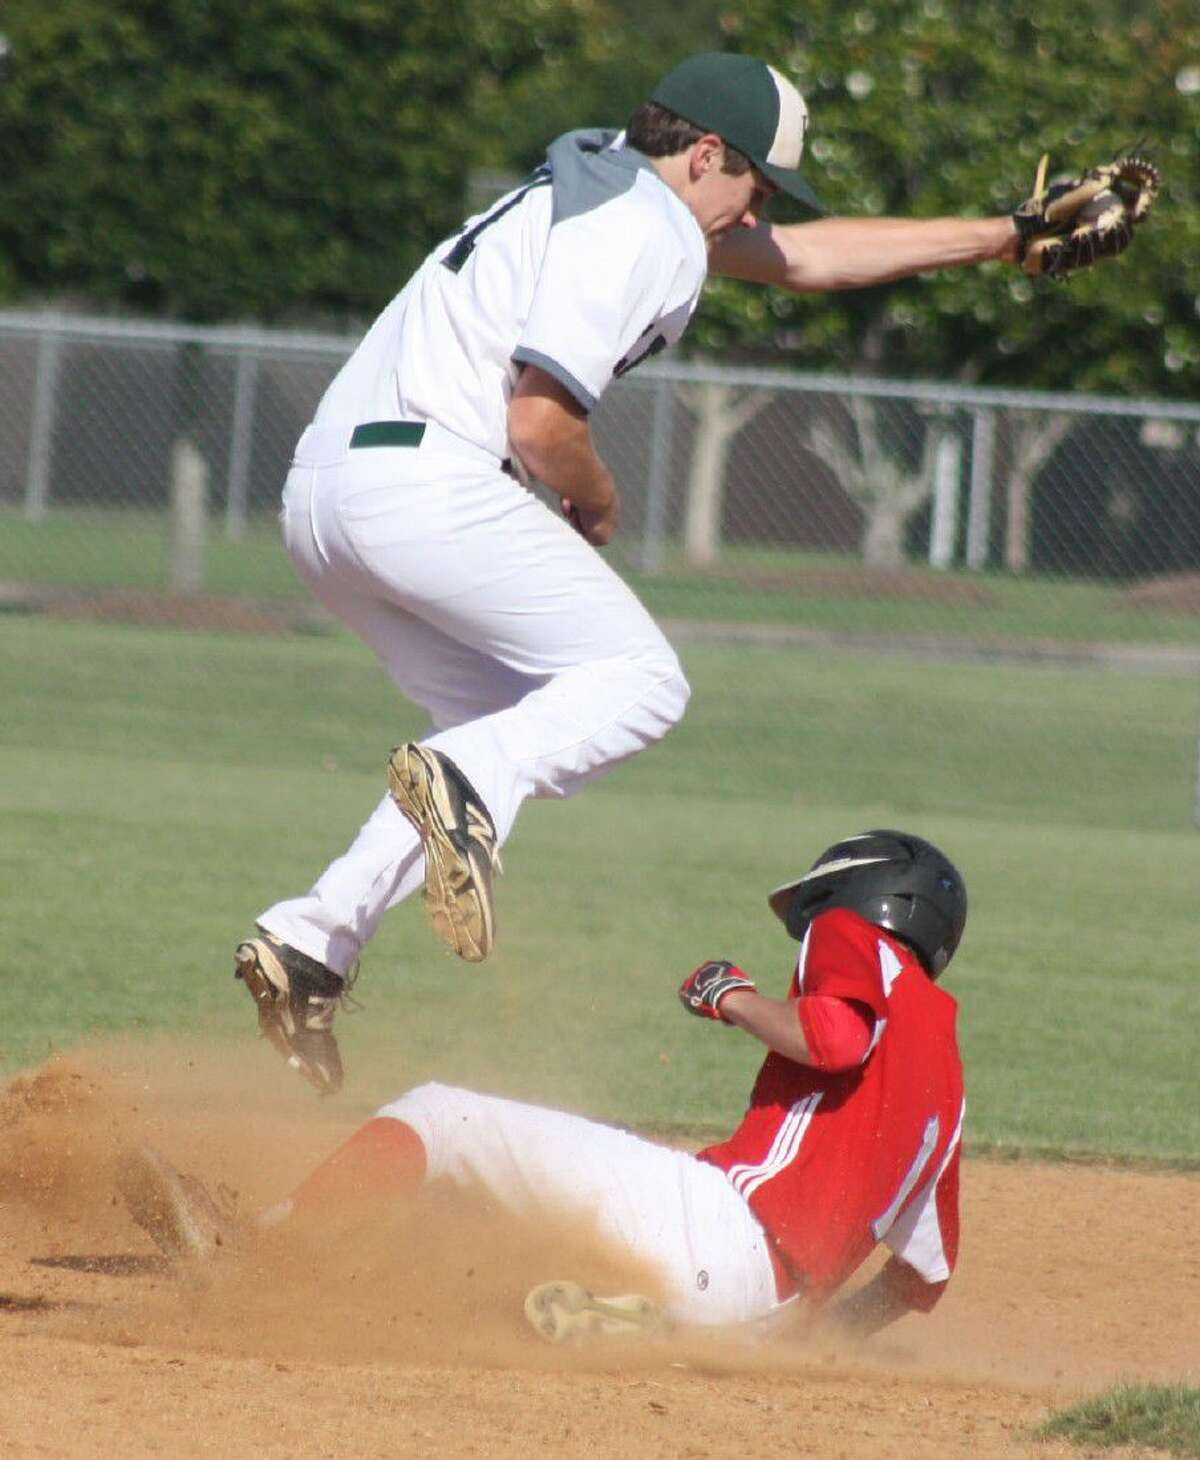 As Legacy Prepratory shortstop Ben Schardt takes a high throw, FBCA's Jake Sweeney slides into second base with a double during the bi-district game. Sweeney eventually scored what proved to be the winning run to the 7-2 victory.